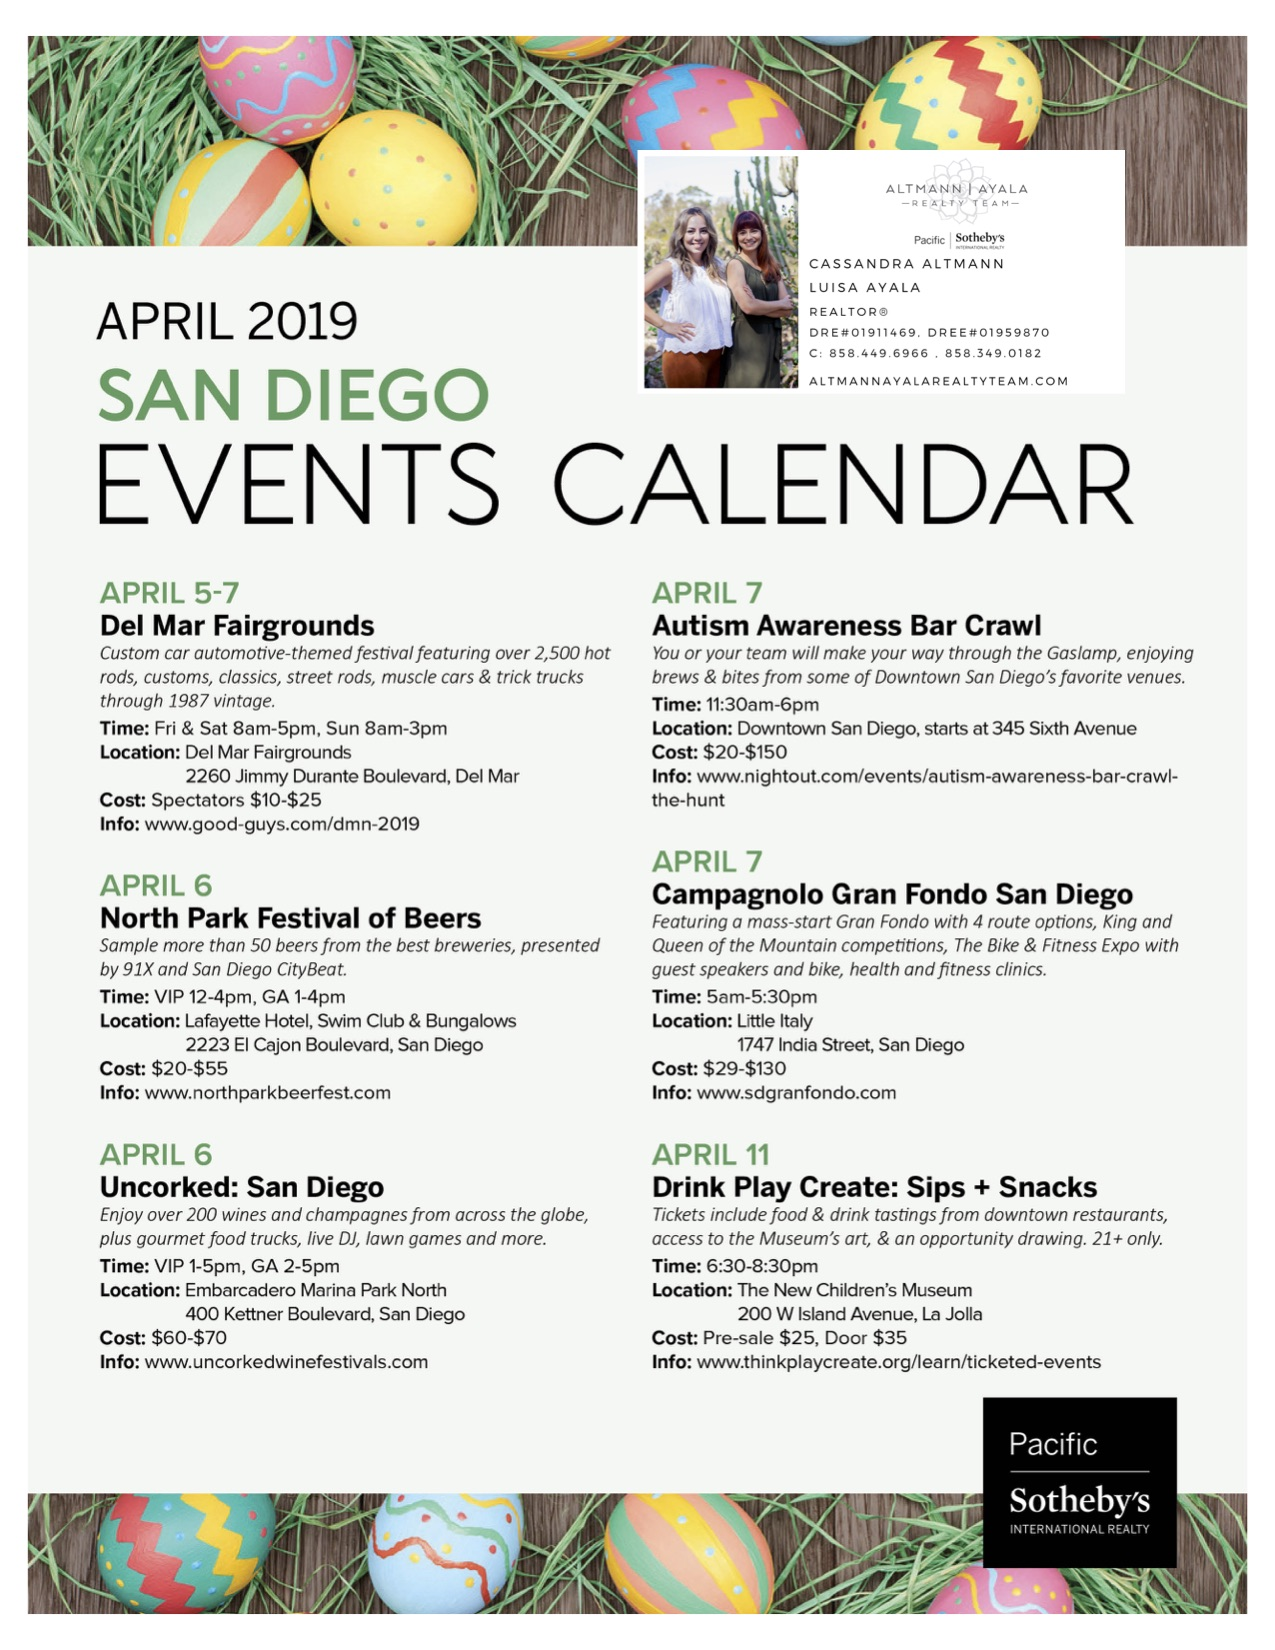 April 2019 San Diego Events Calendar